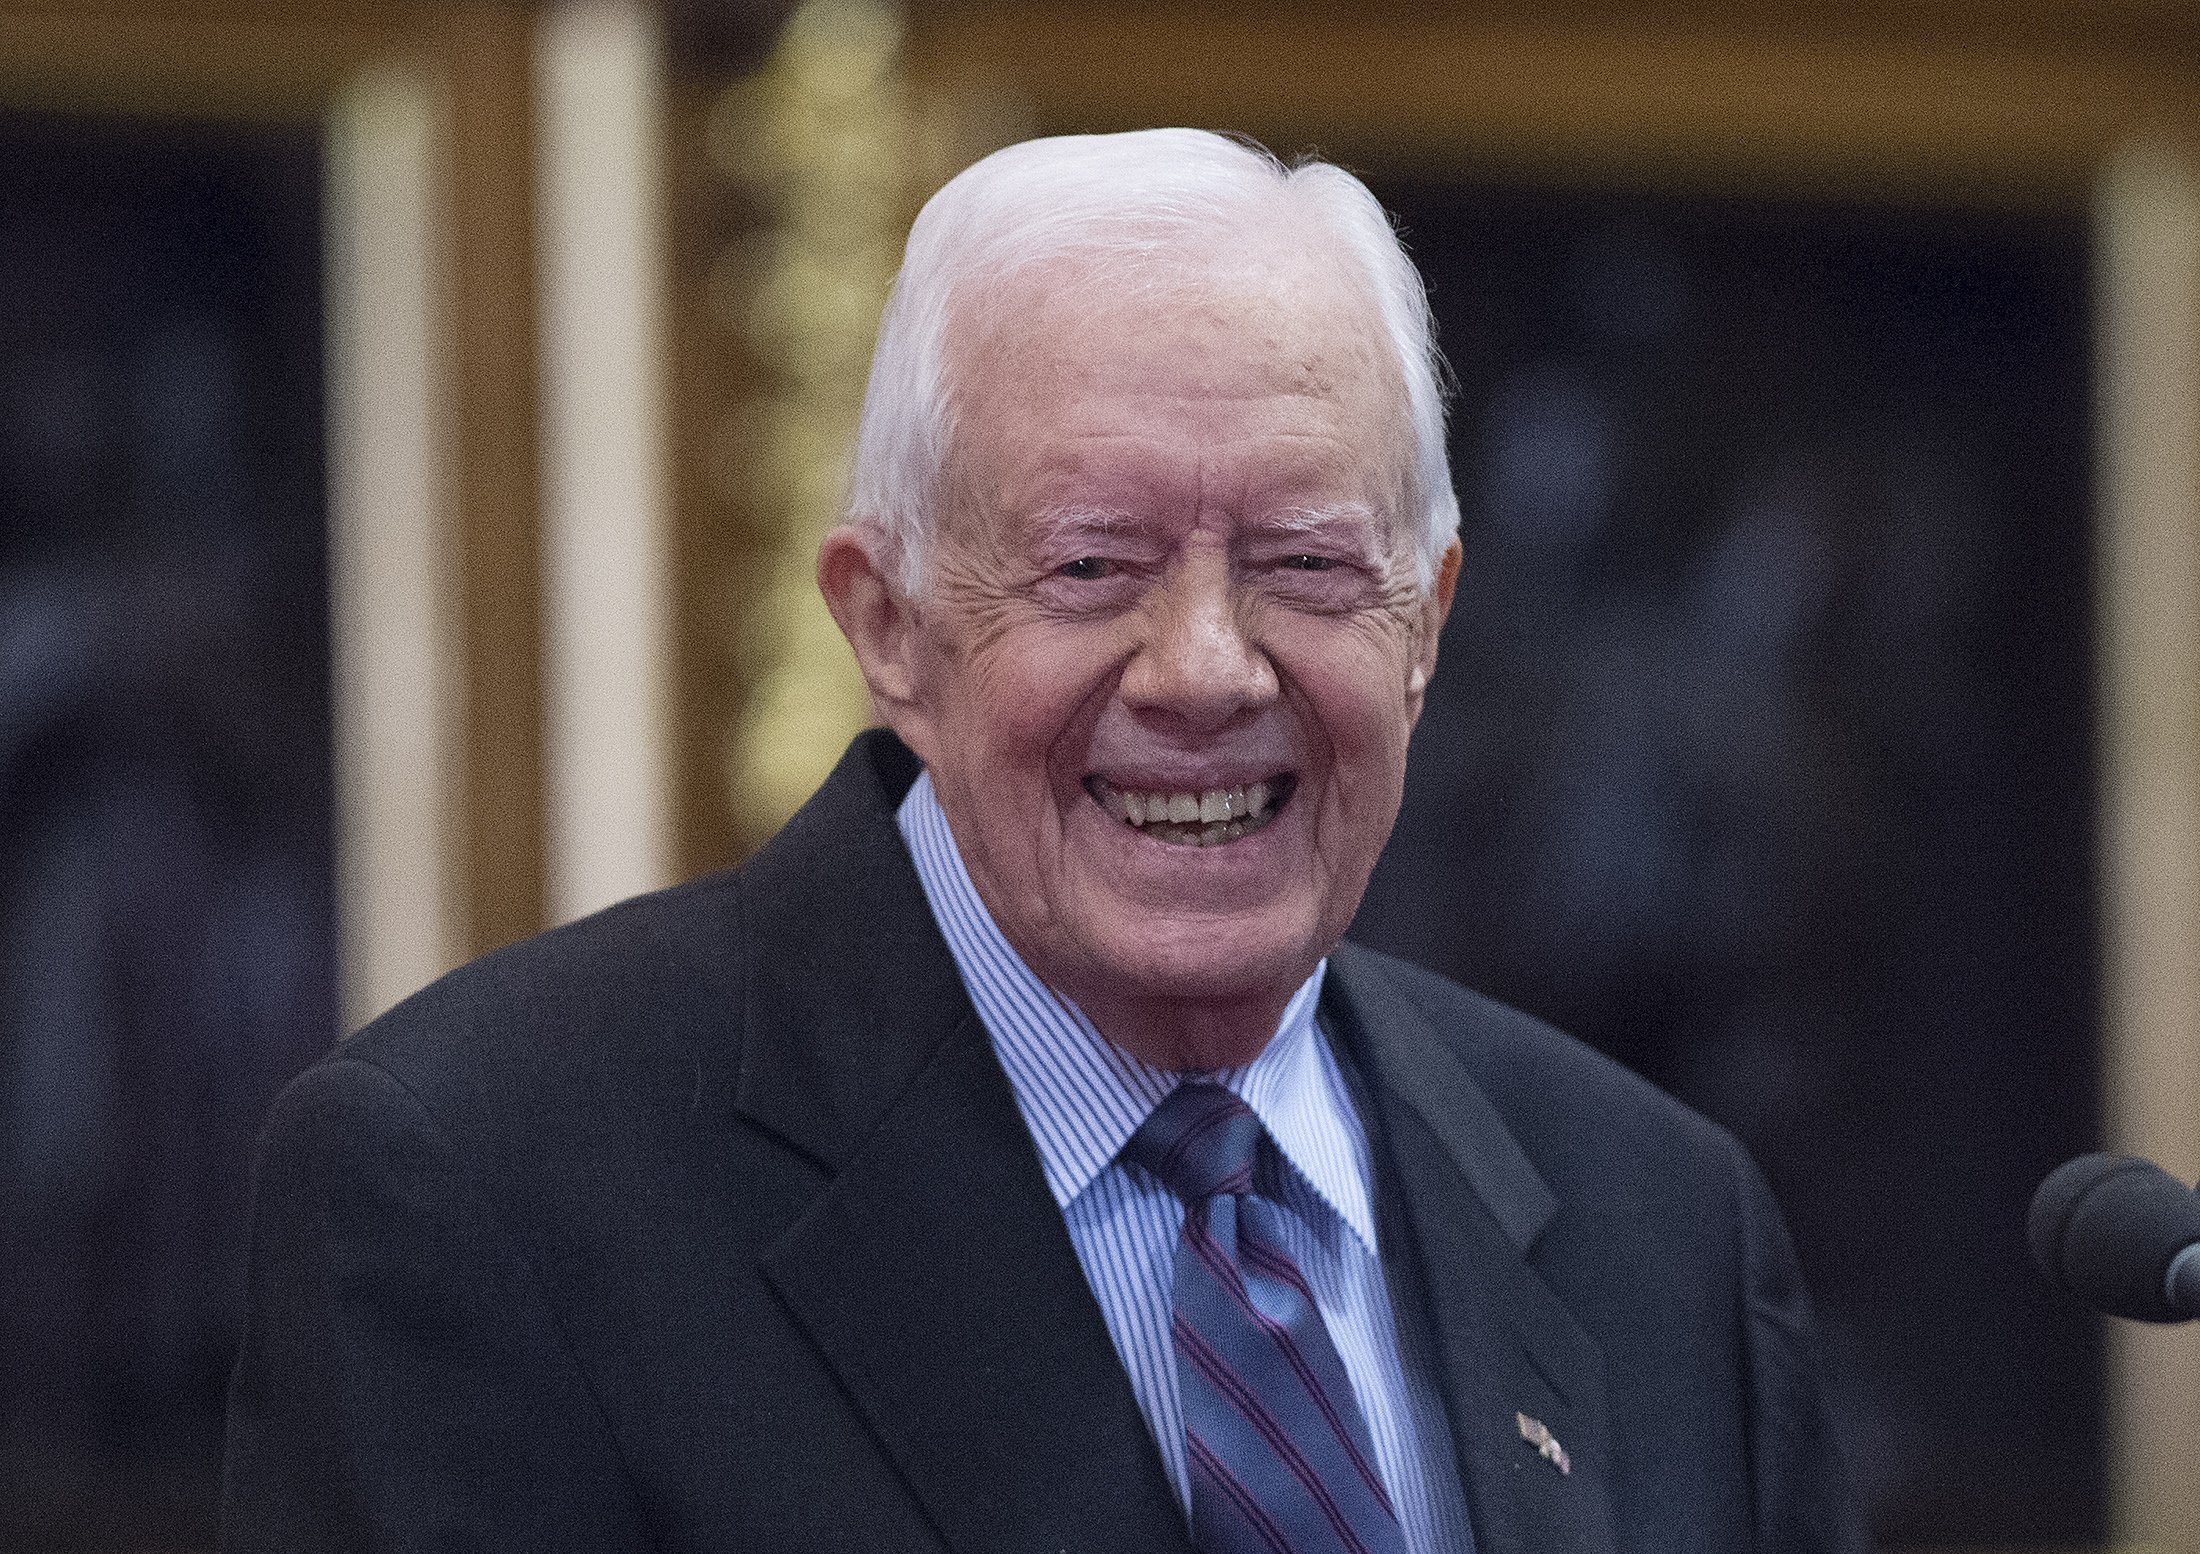 Jimmy Carter delivers a lecture on the eradication of the Guinea worm, at the House of Lords on February 3, 2016 in London. | Source: Getty Images.